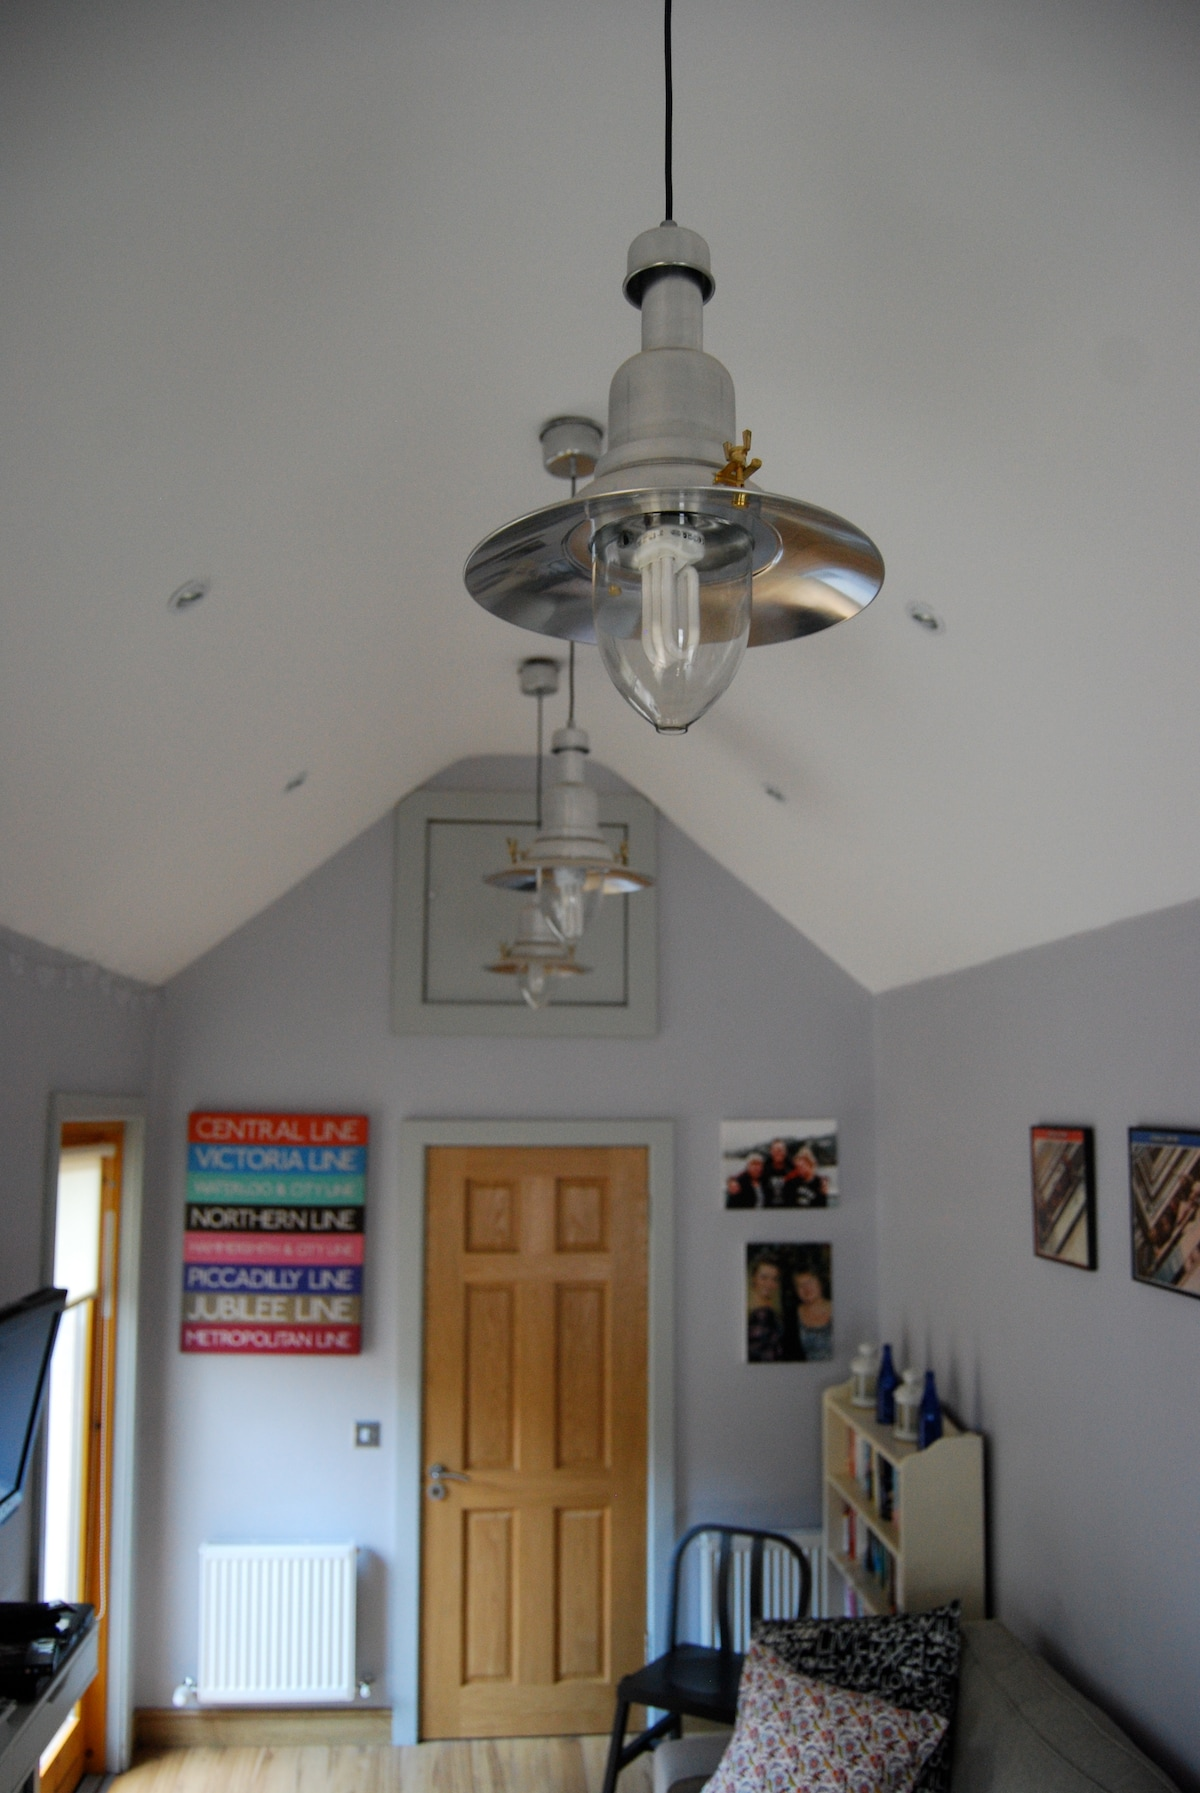 Newly converted with high well designed ceiling